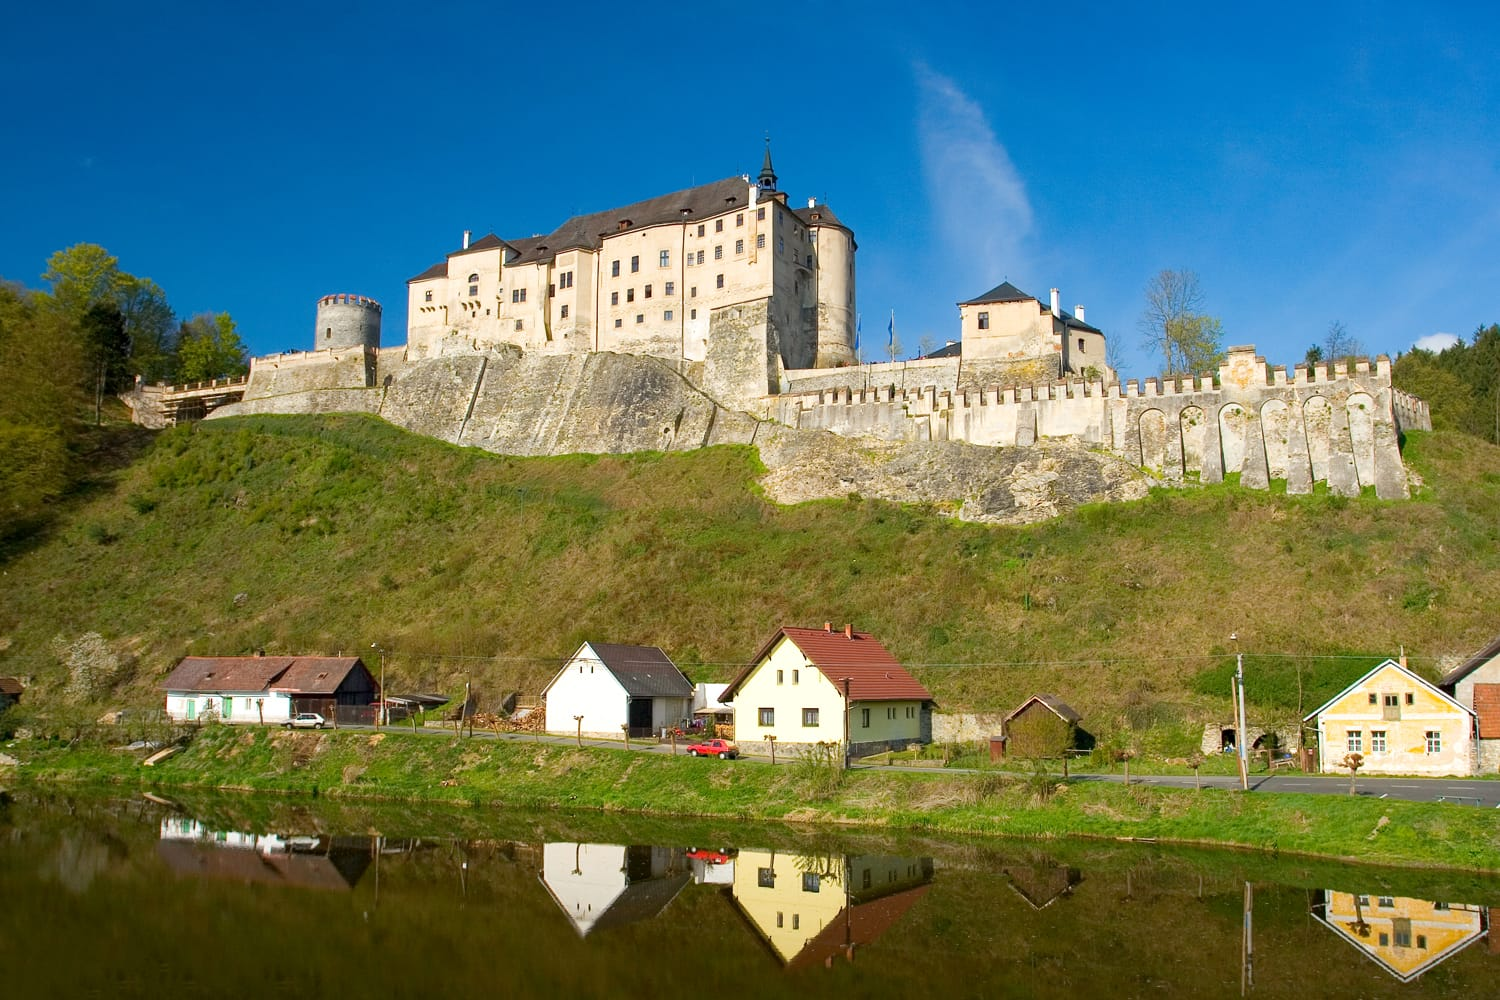 Photo of a castle Cesky Sternberk with blue sky in Czech republic